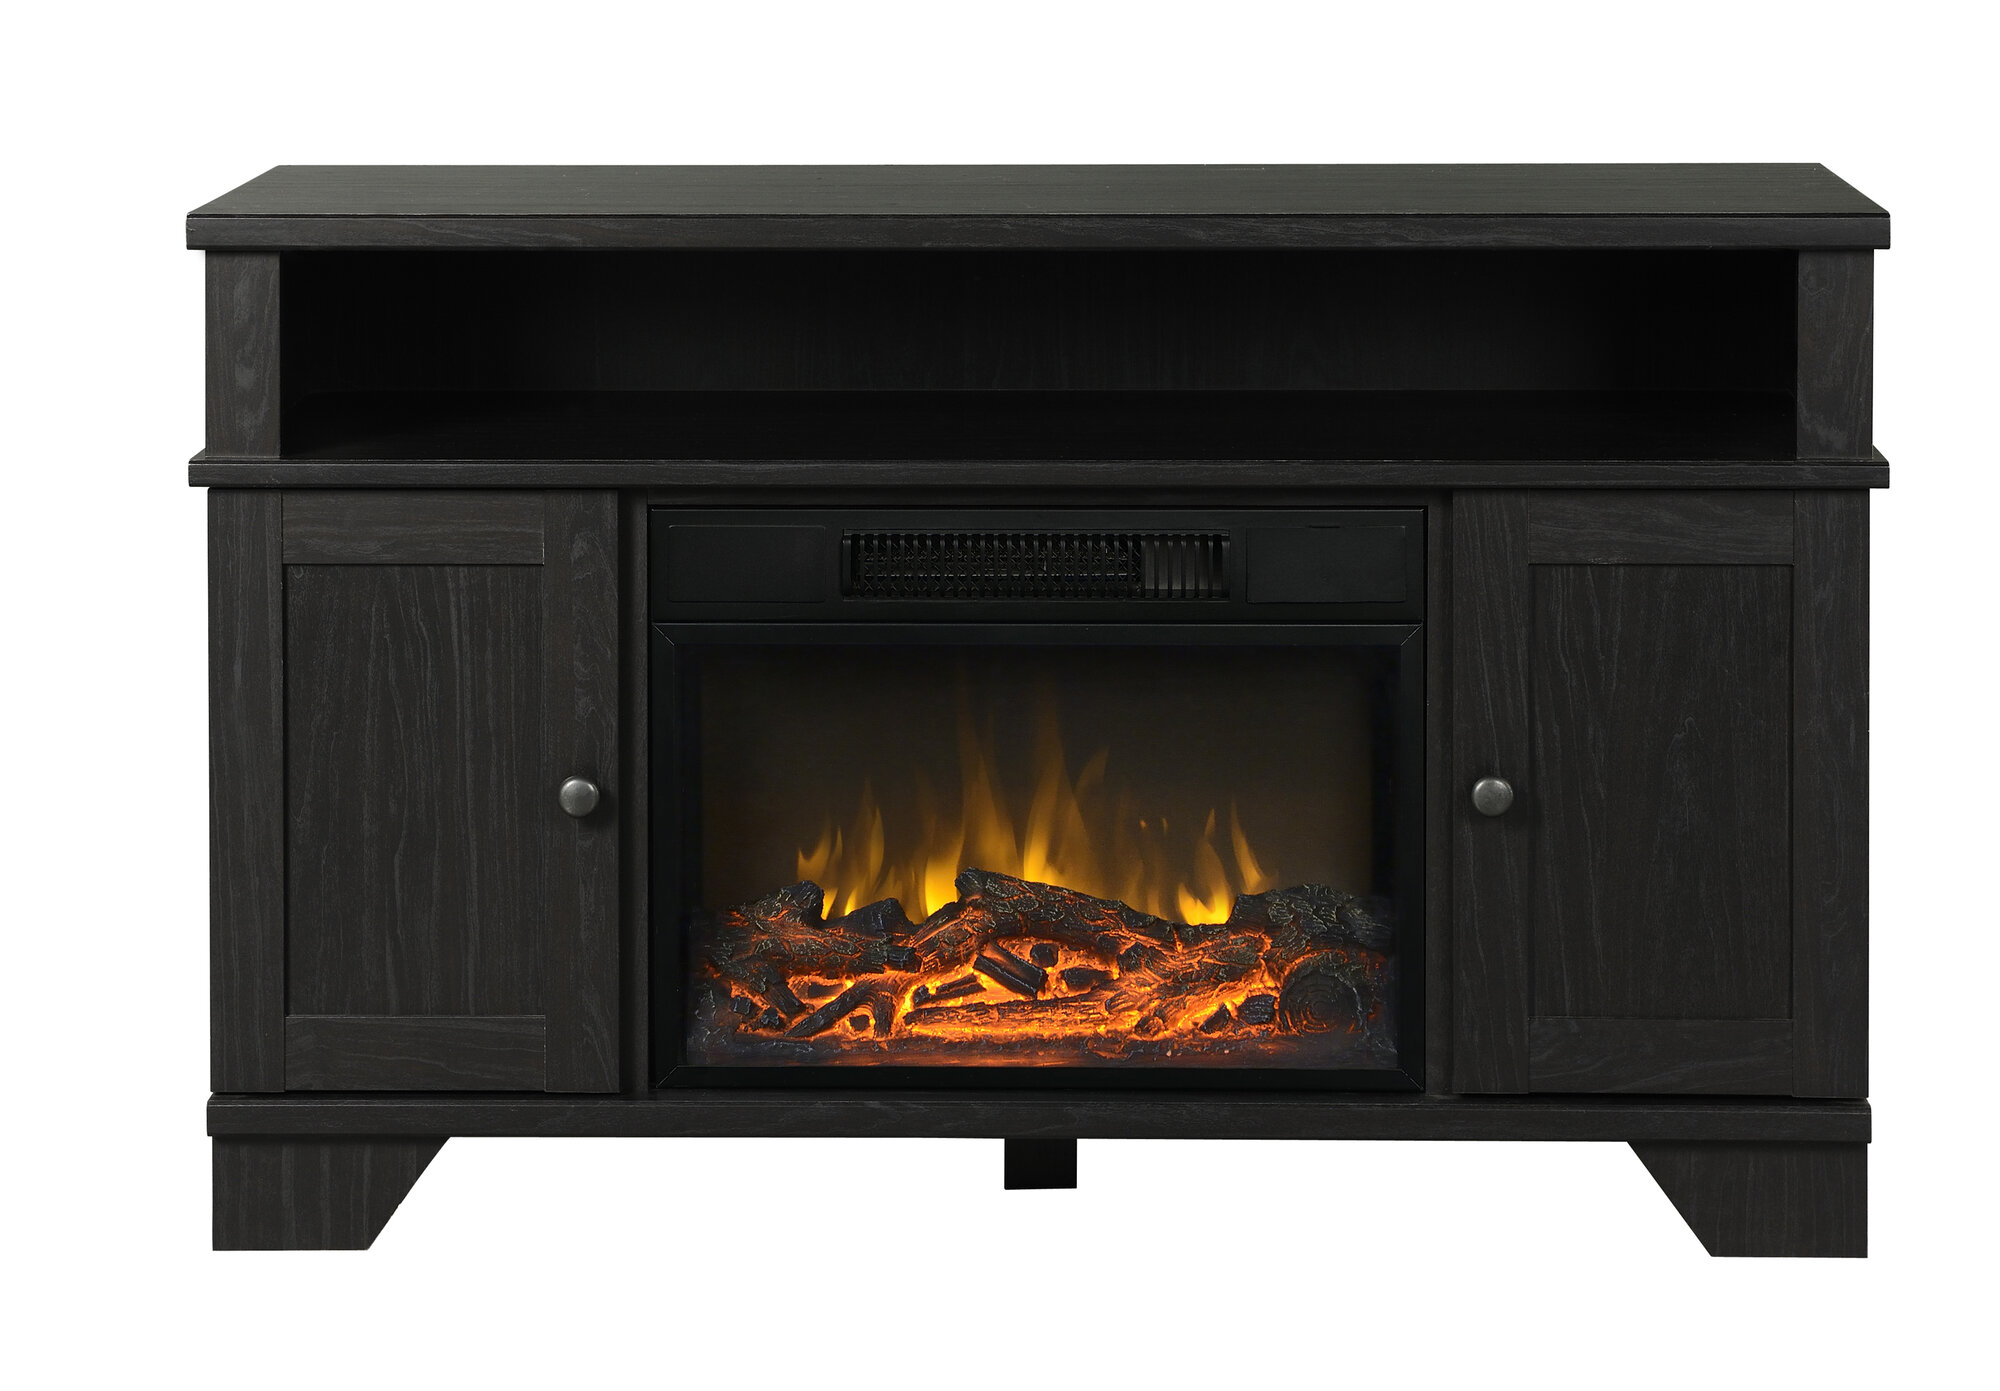 Homestar Hamilton 45 Quot Tv Stand With Electric Fireplace Ebay